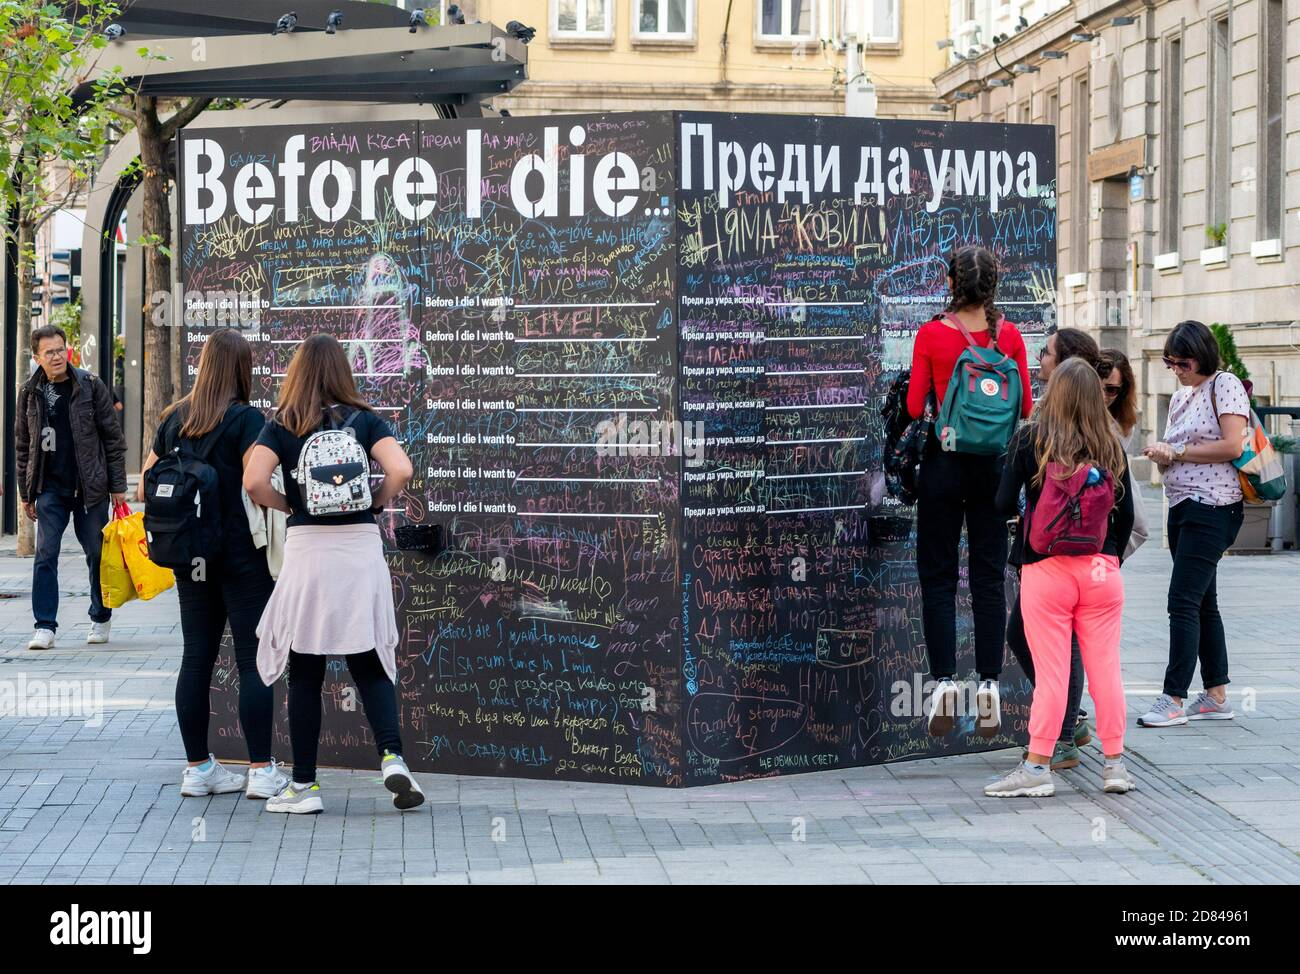 Group of teenage girls hanging out by a blackboard or chalkboard wall for the Before I Die public interactive art project in Sofia Bulgaria Stock Photo